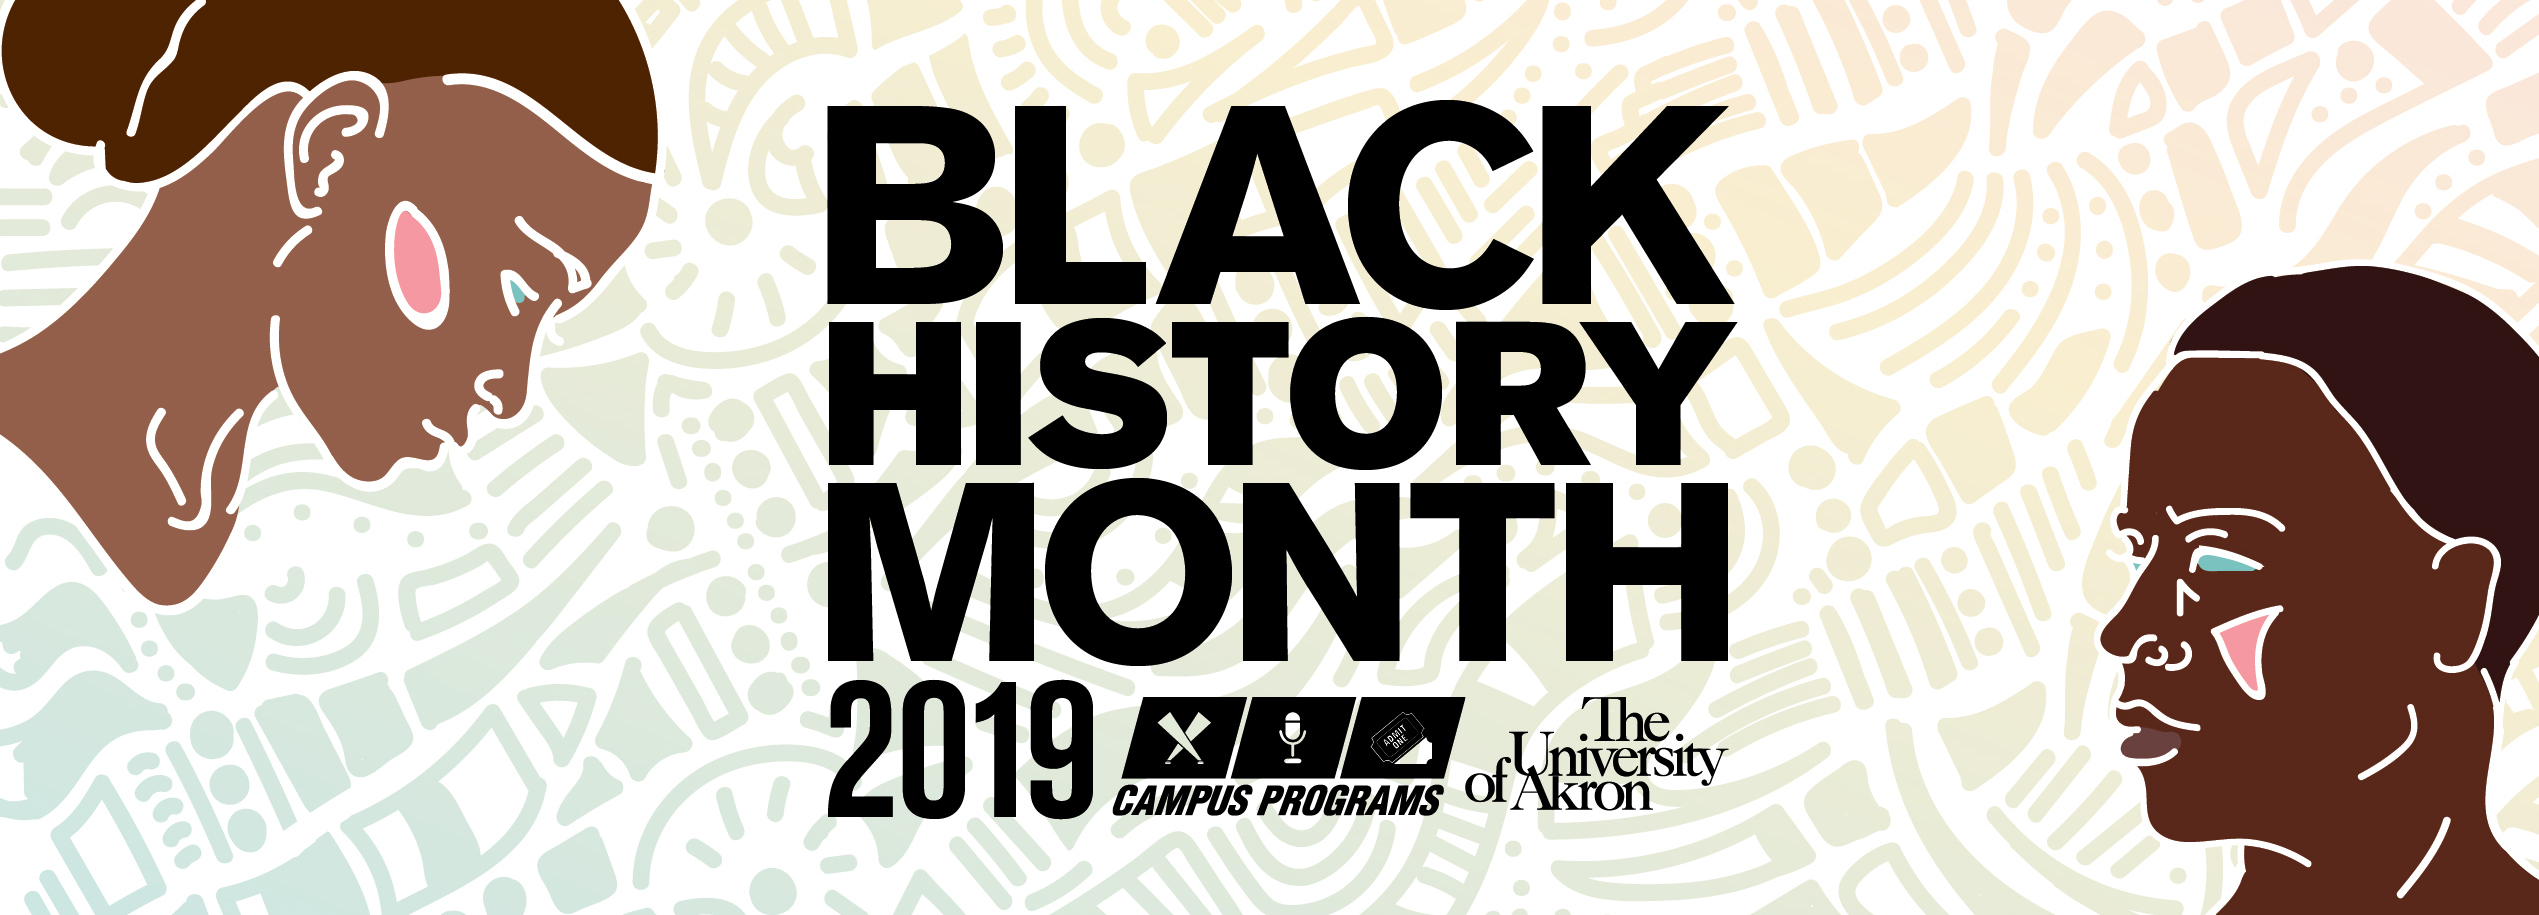 57dd5d42757f Black History Month   The University of Akron